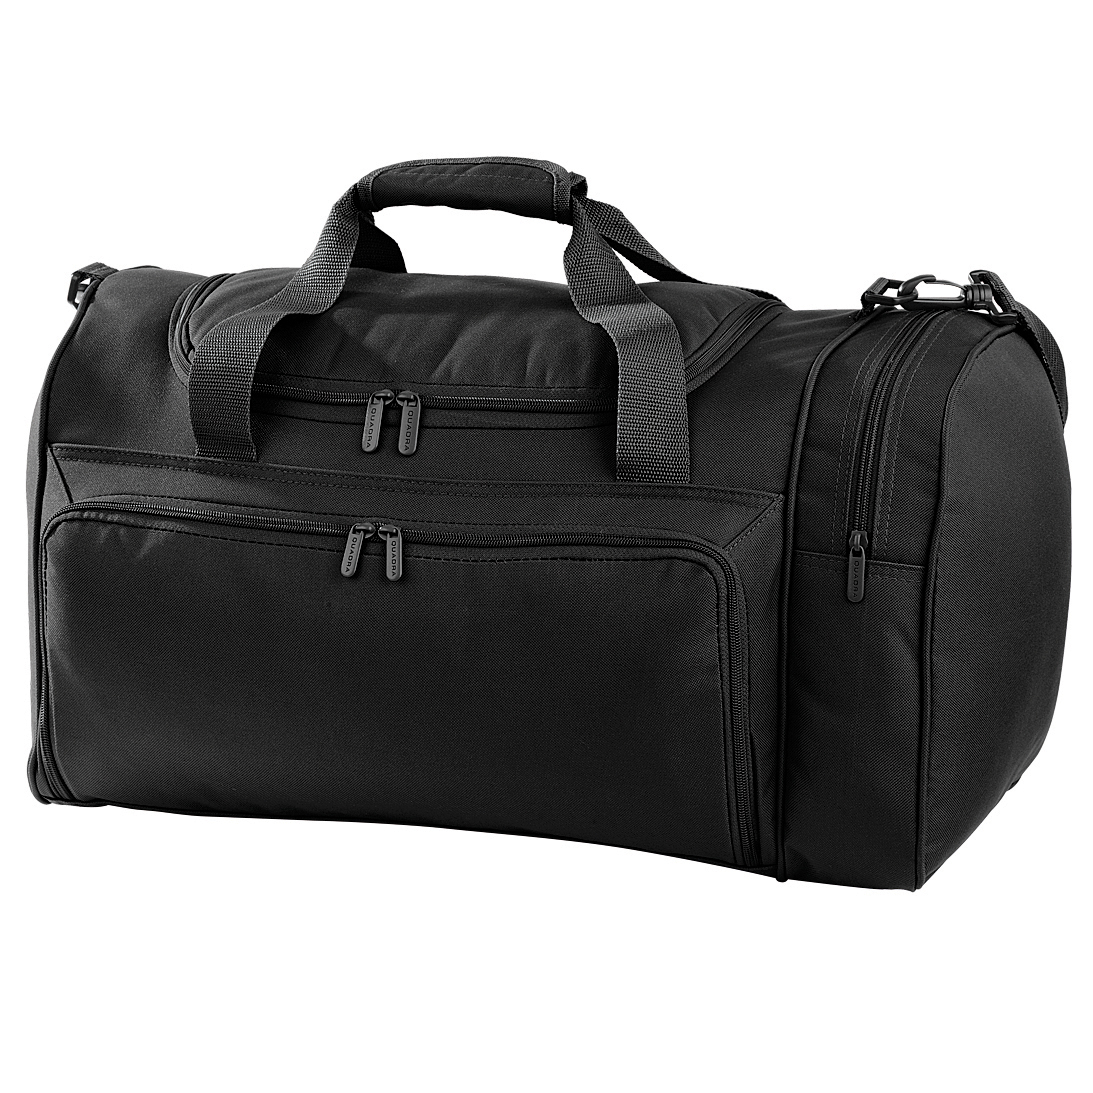 Quadra Universal Holdall Duffle Bag - 35 Litres (Pack of 2) (One Size) (Black)